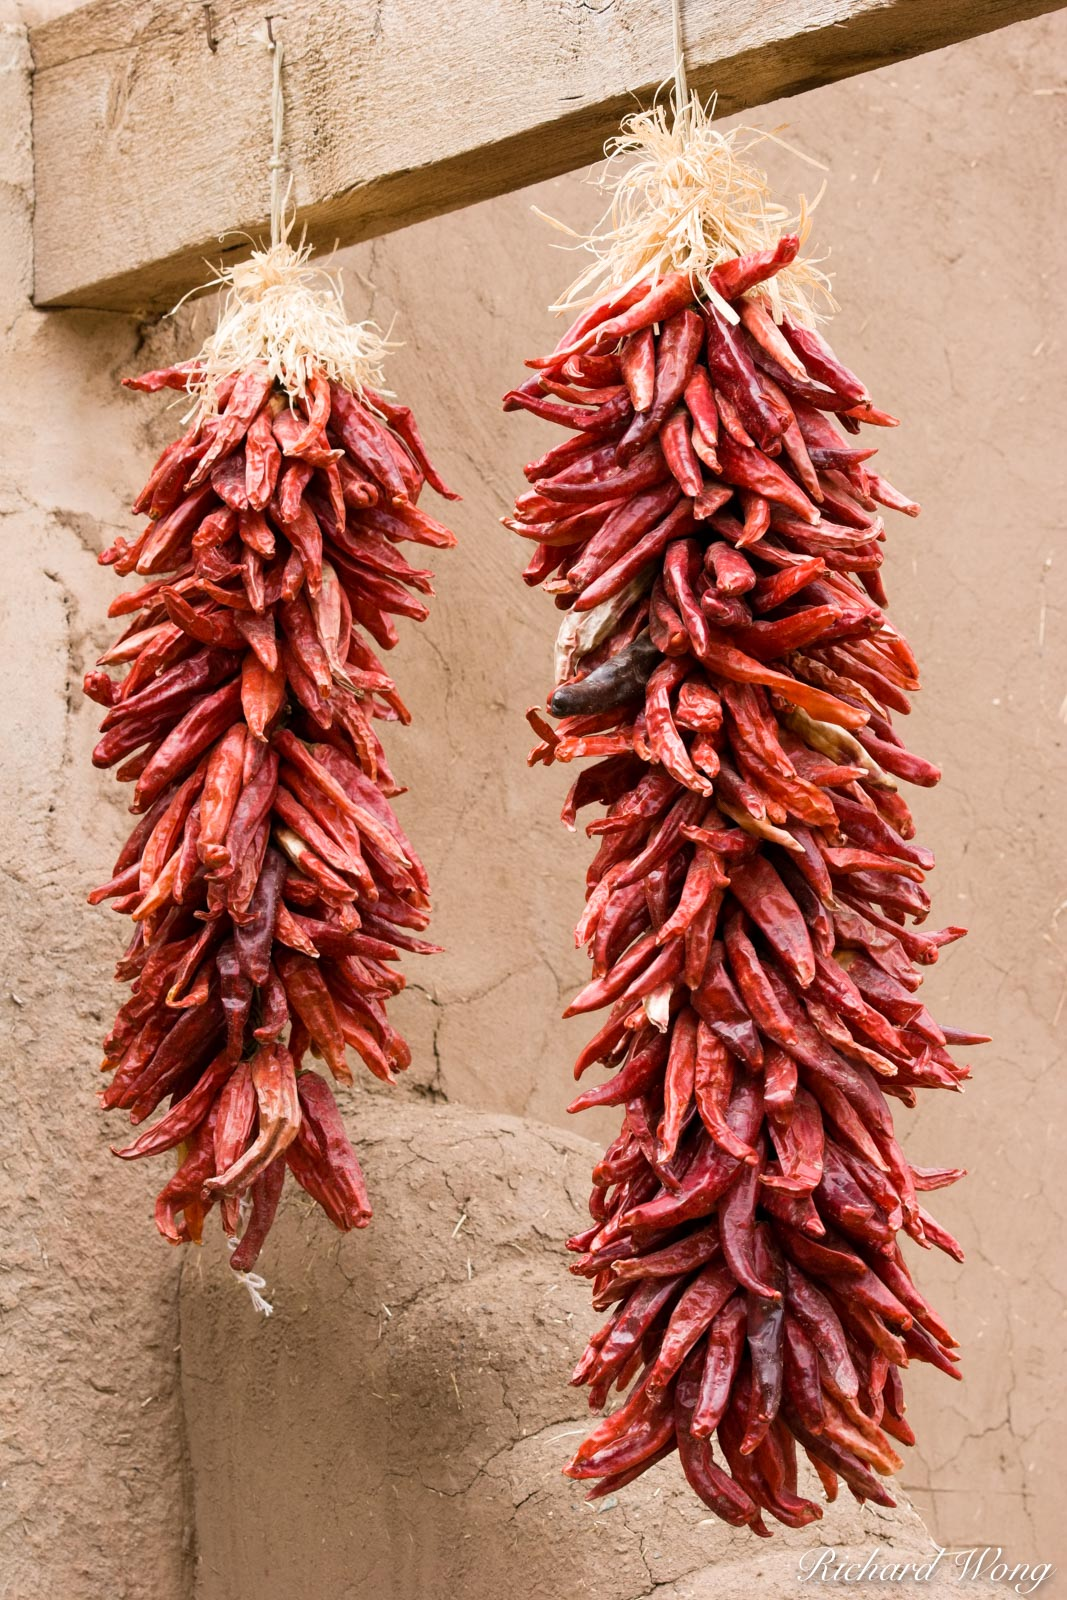 New Mexico, adobe structure, chili, cuisine, food, history, hot, indian reservation, native american, pepper, peppers, red chilis, red willow indians, seasoning, seasonings, southwest, southwestern, s, photo